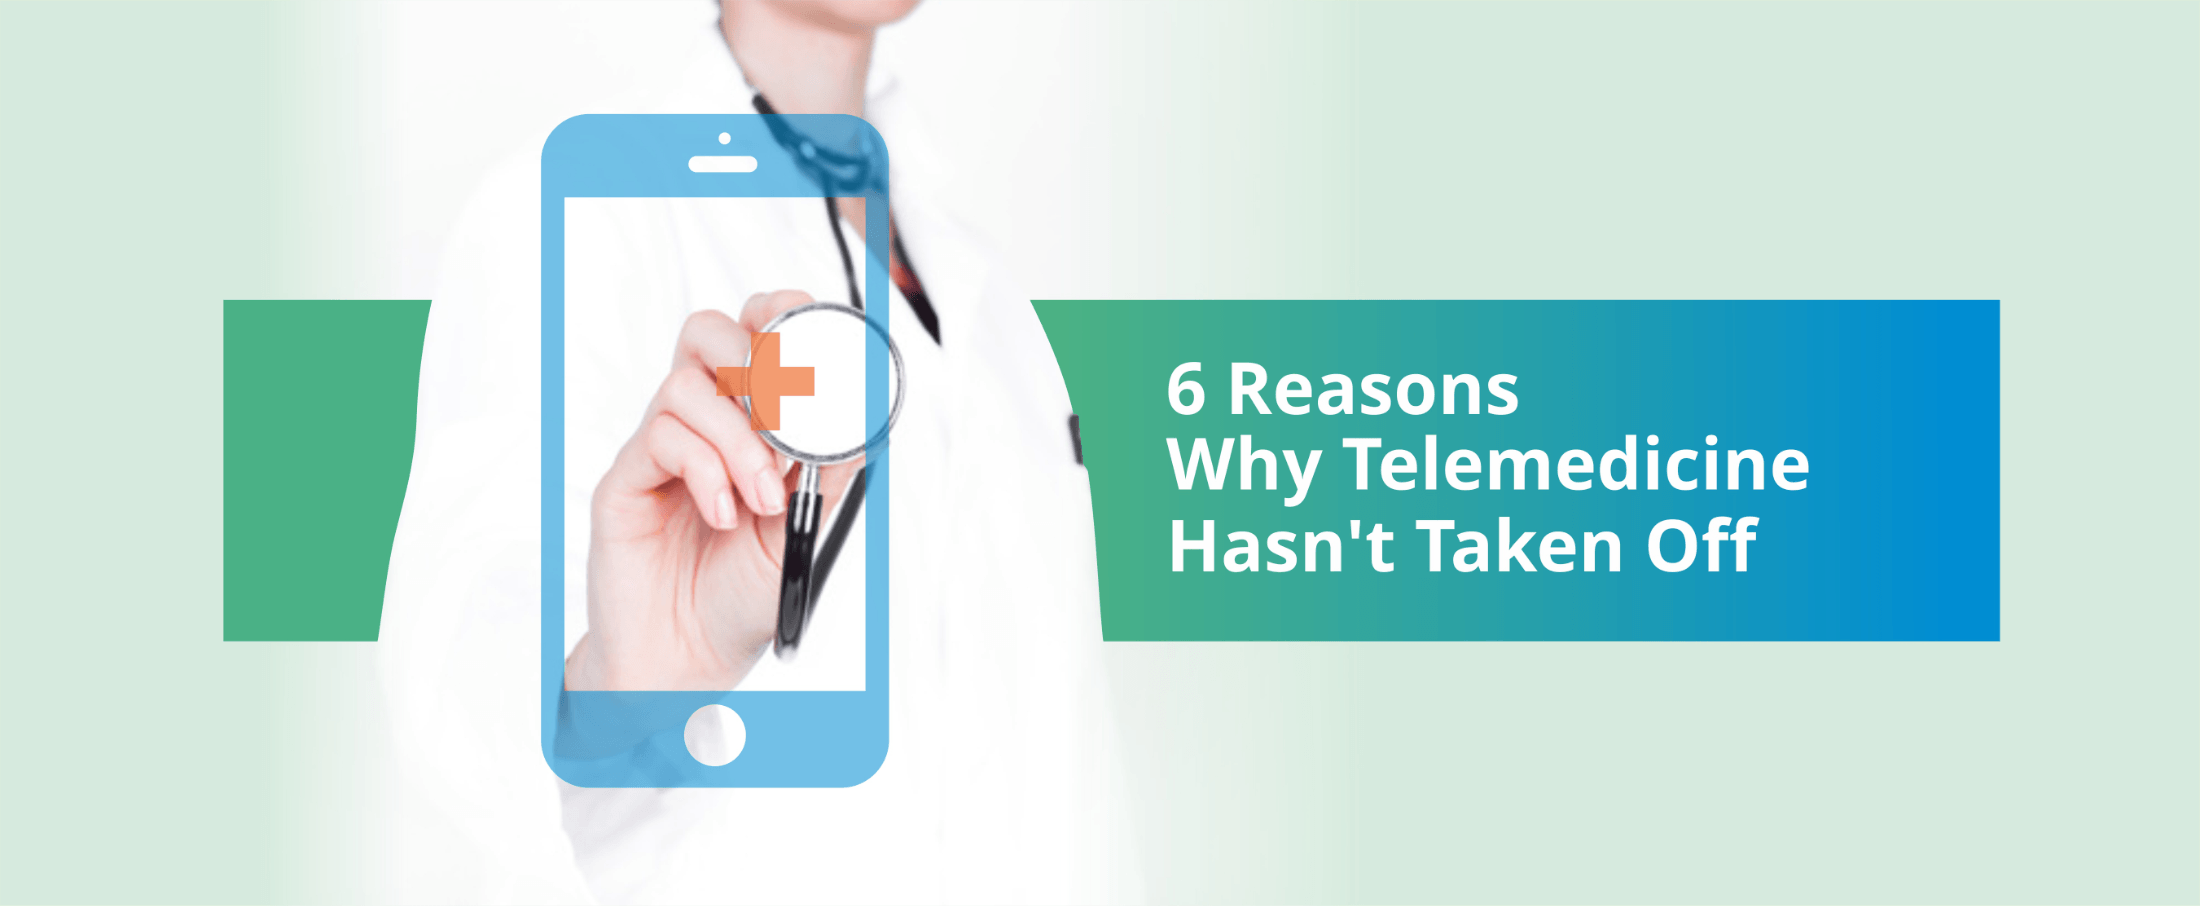 6 Reasons Why Telemedicine Hasn T Taken Off